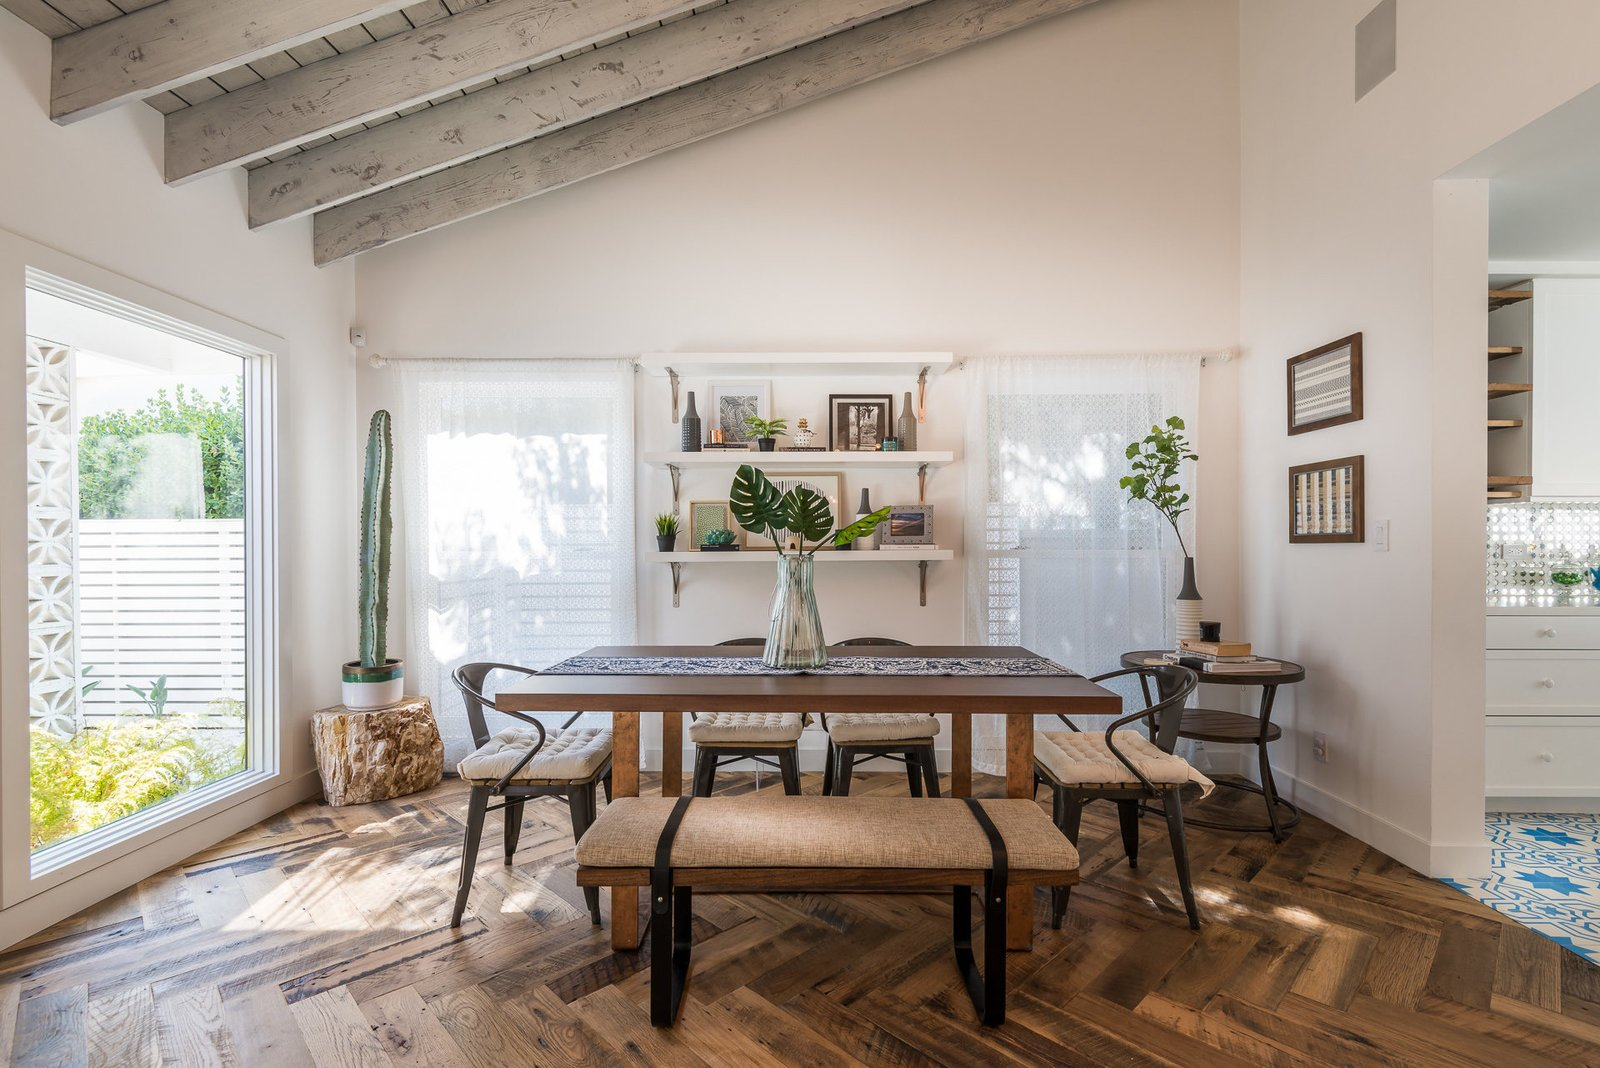 Tagged: Dining Room, Bench, Table, Medium Hardwood Floor, and Chair.  Mid-Century Meets Boho Chic by Zillow